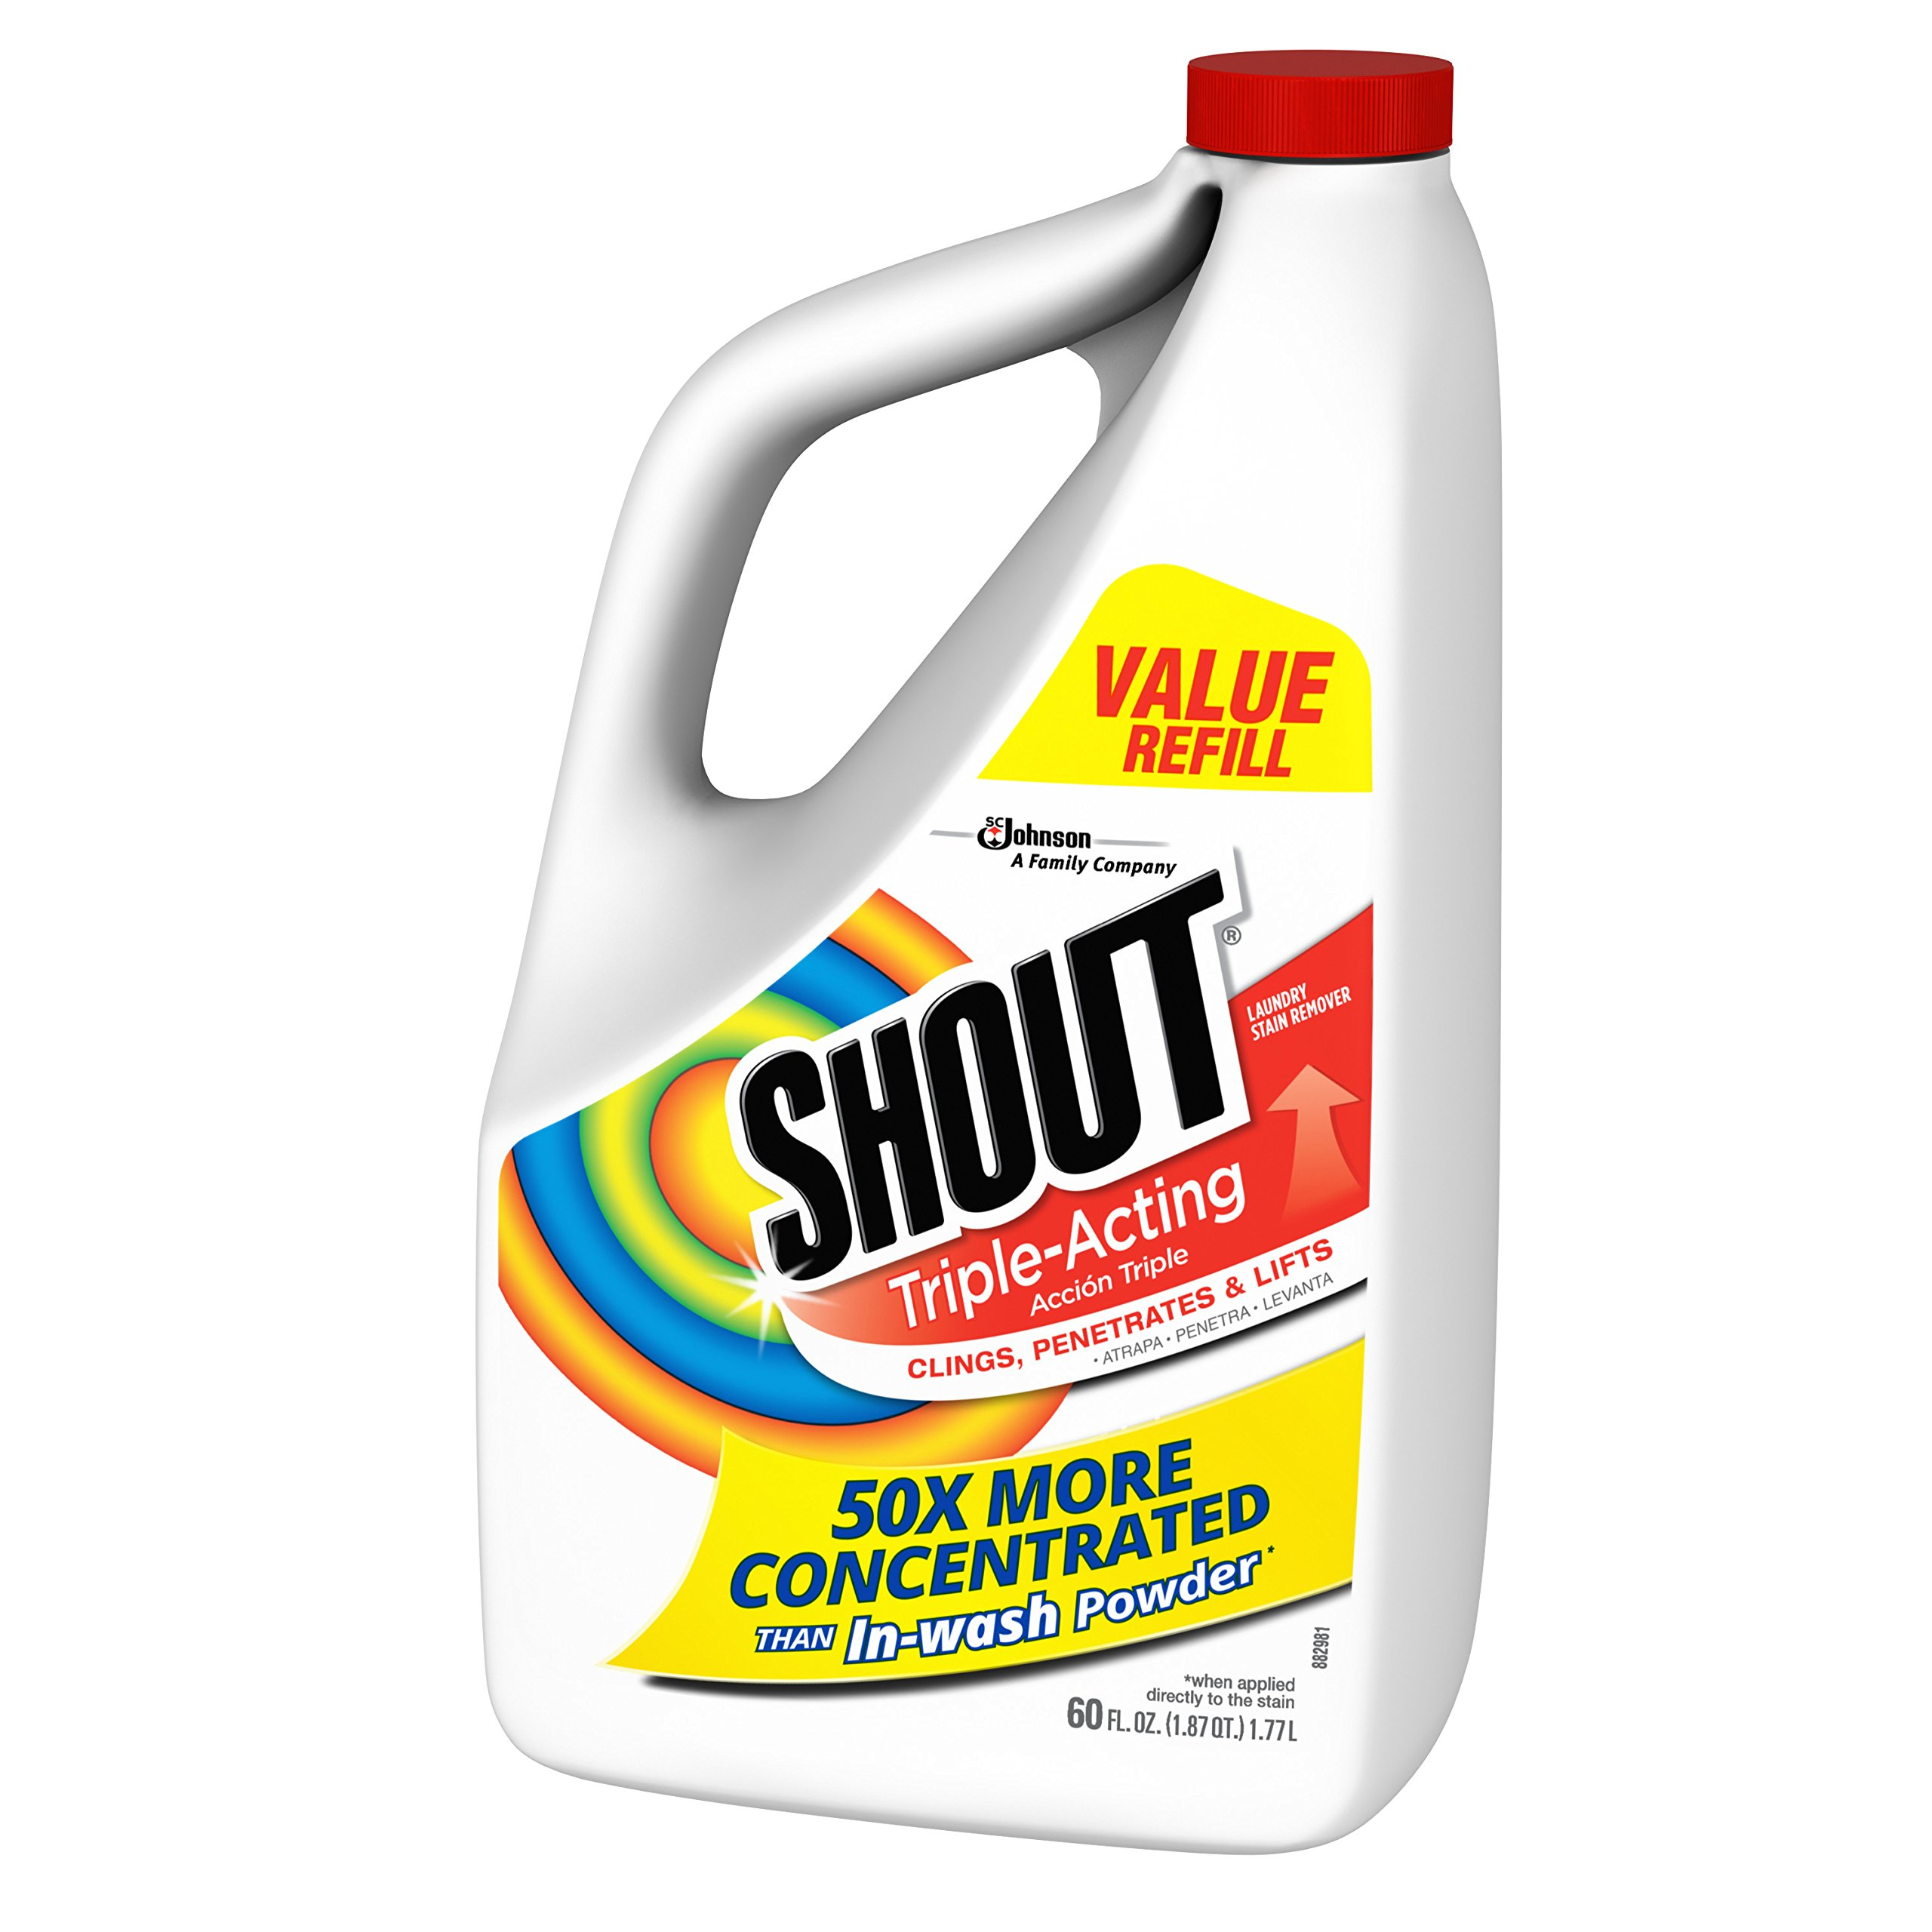 Shout Triple-Acting Liquid Refill 60 fl oz. (Pack of 6) by Shout (Image #4)